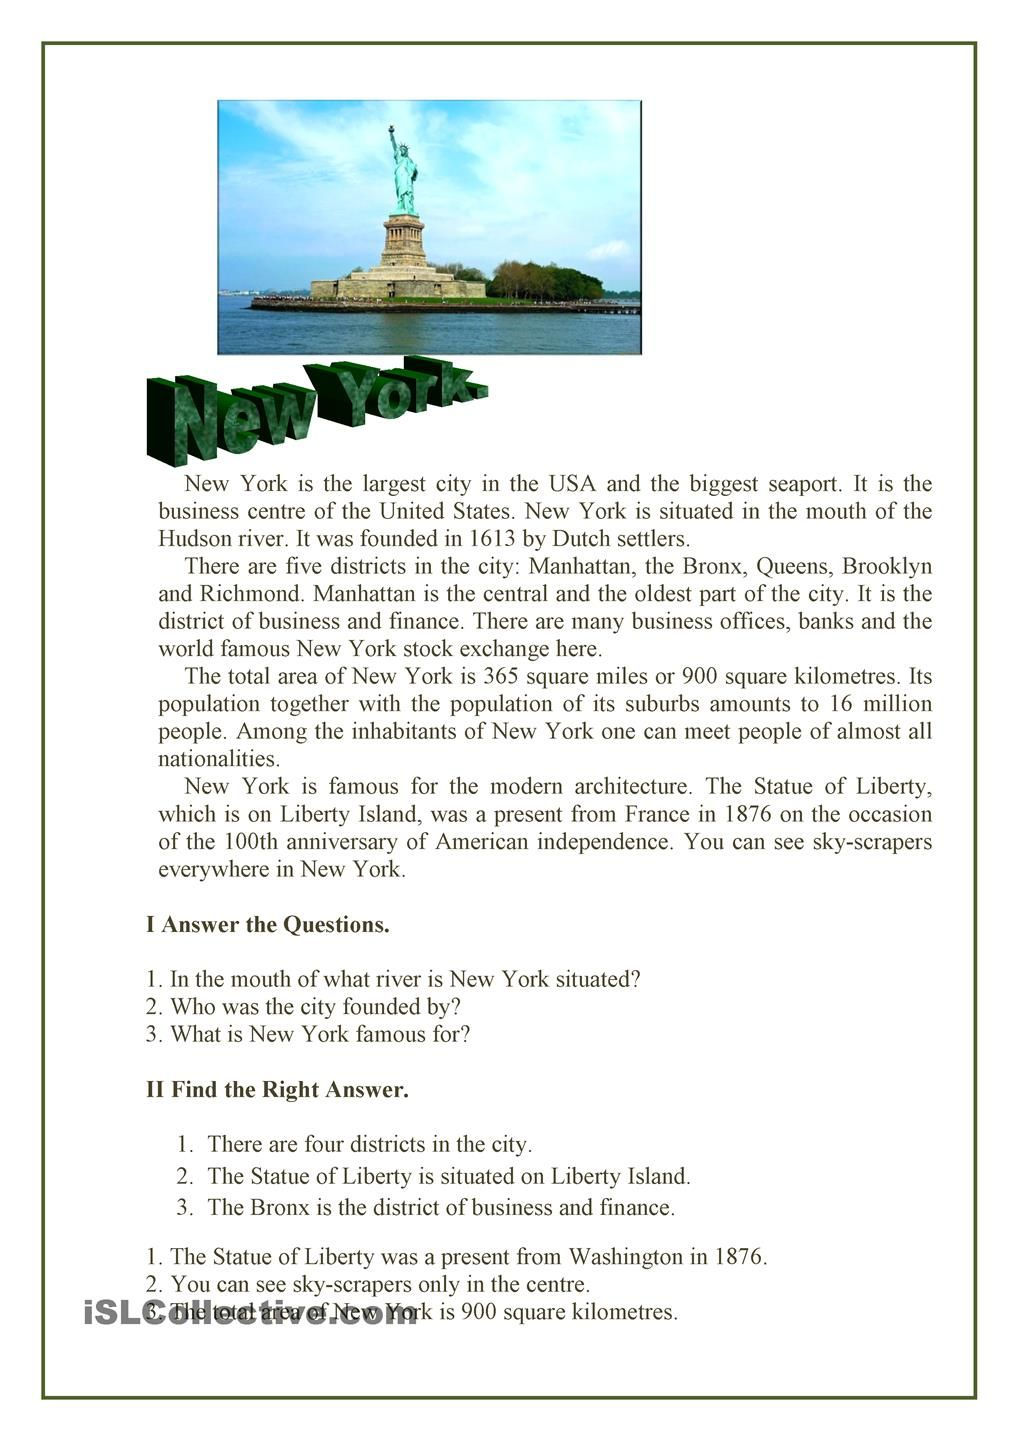 New York English Reading English Exercises Learn English Reading texts for pre intermediate